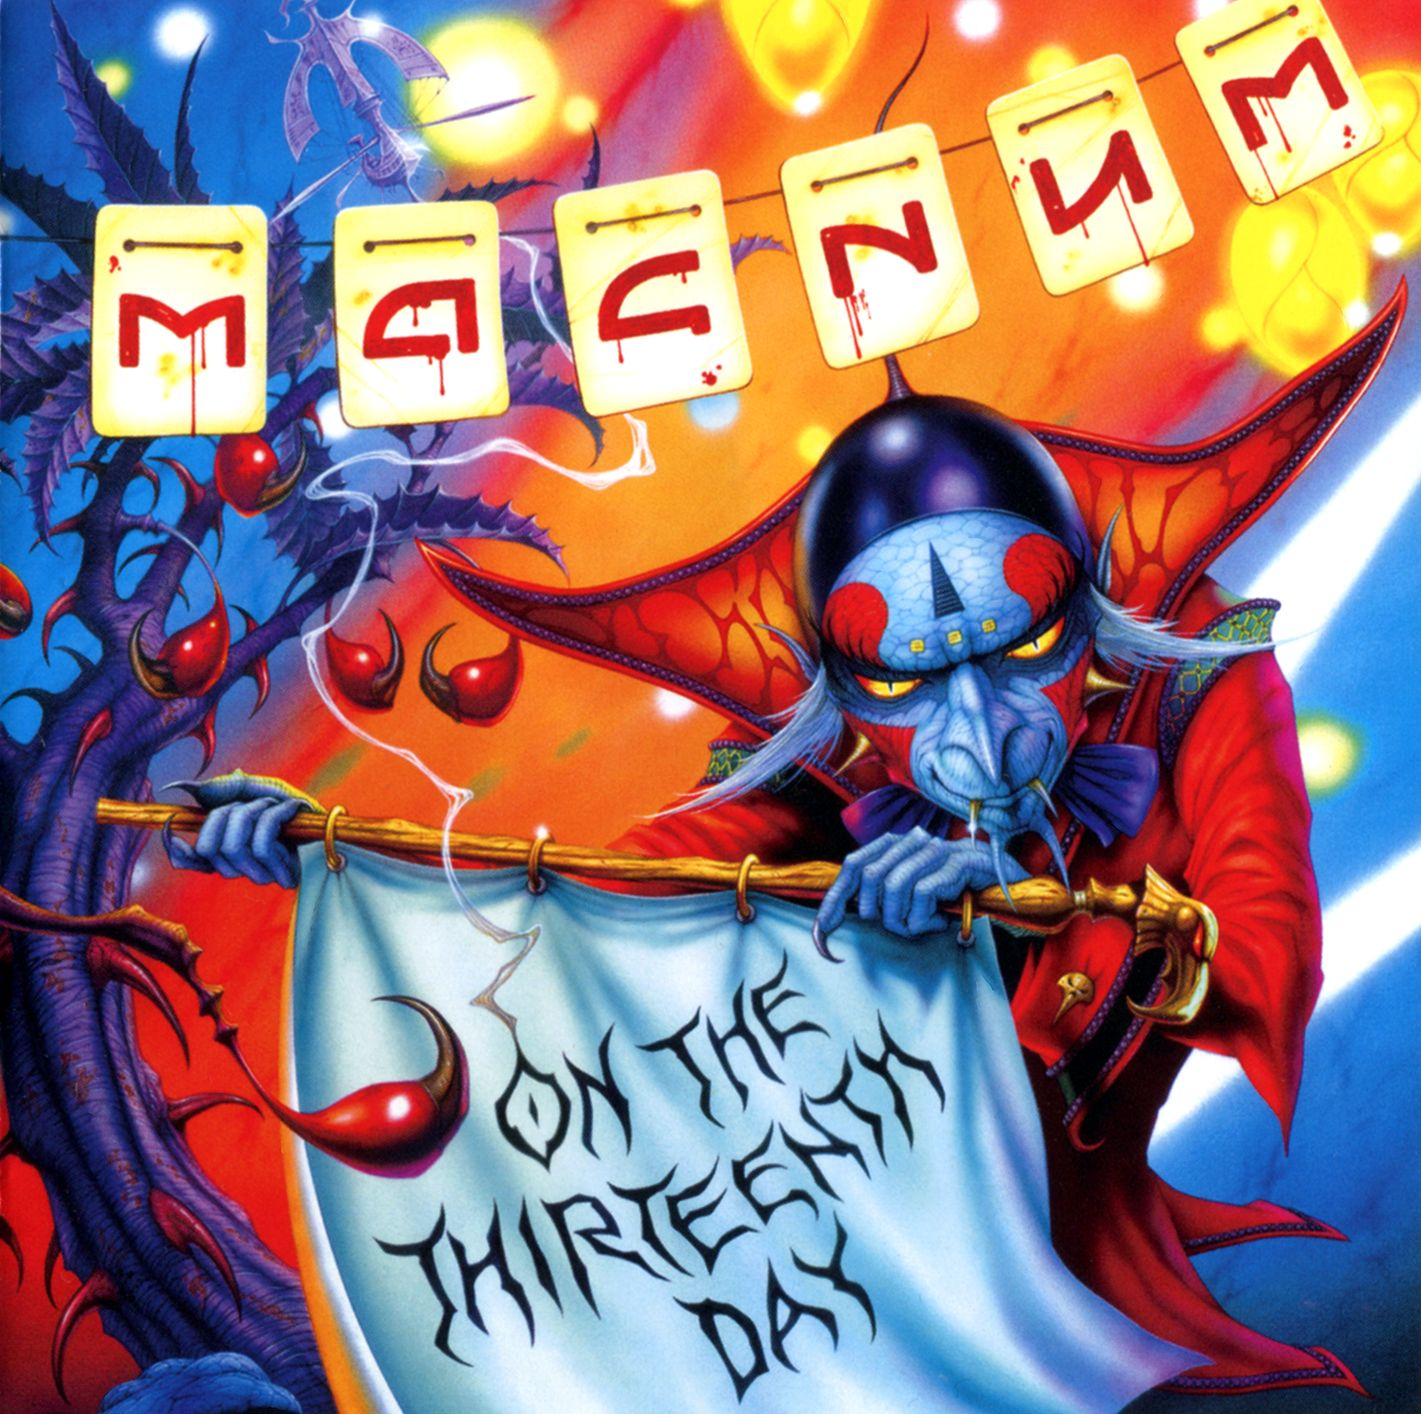 Magnum - On The Thirteenth Day album cover